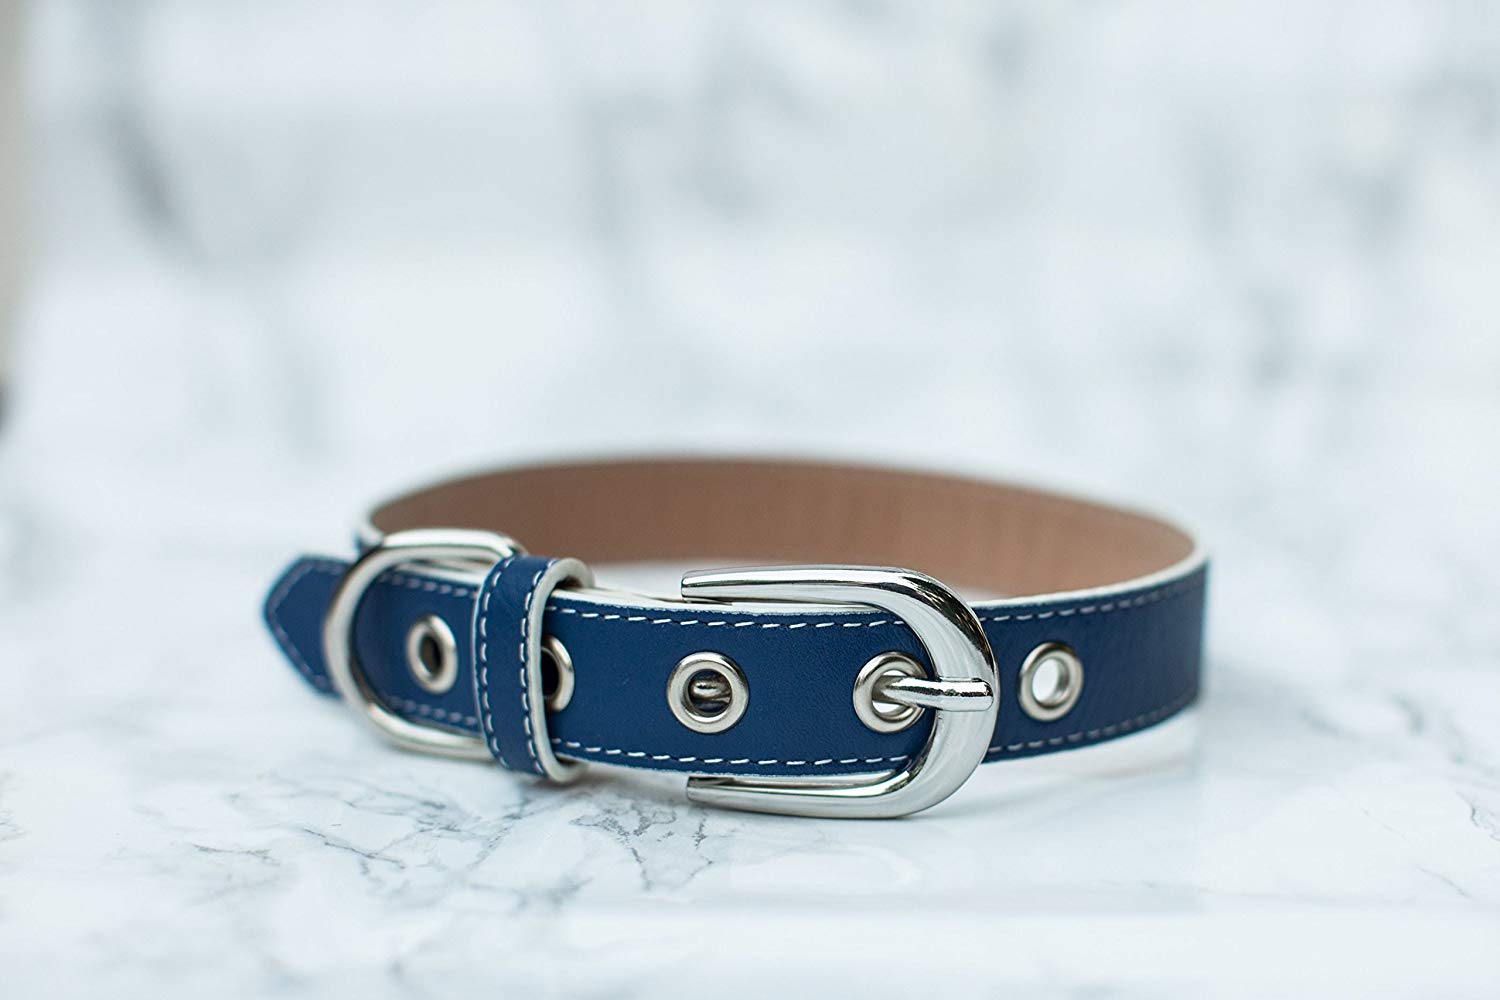 willow penn dog collar